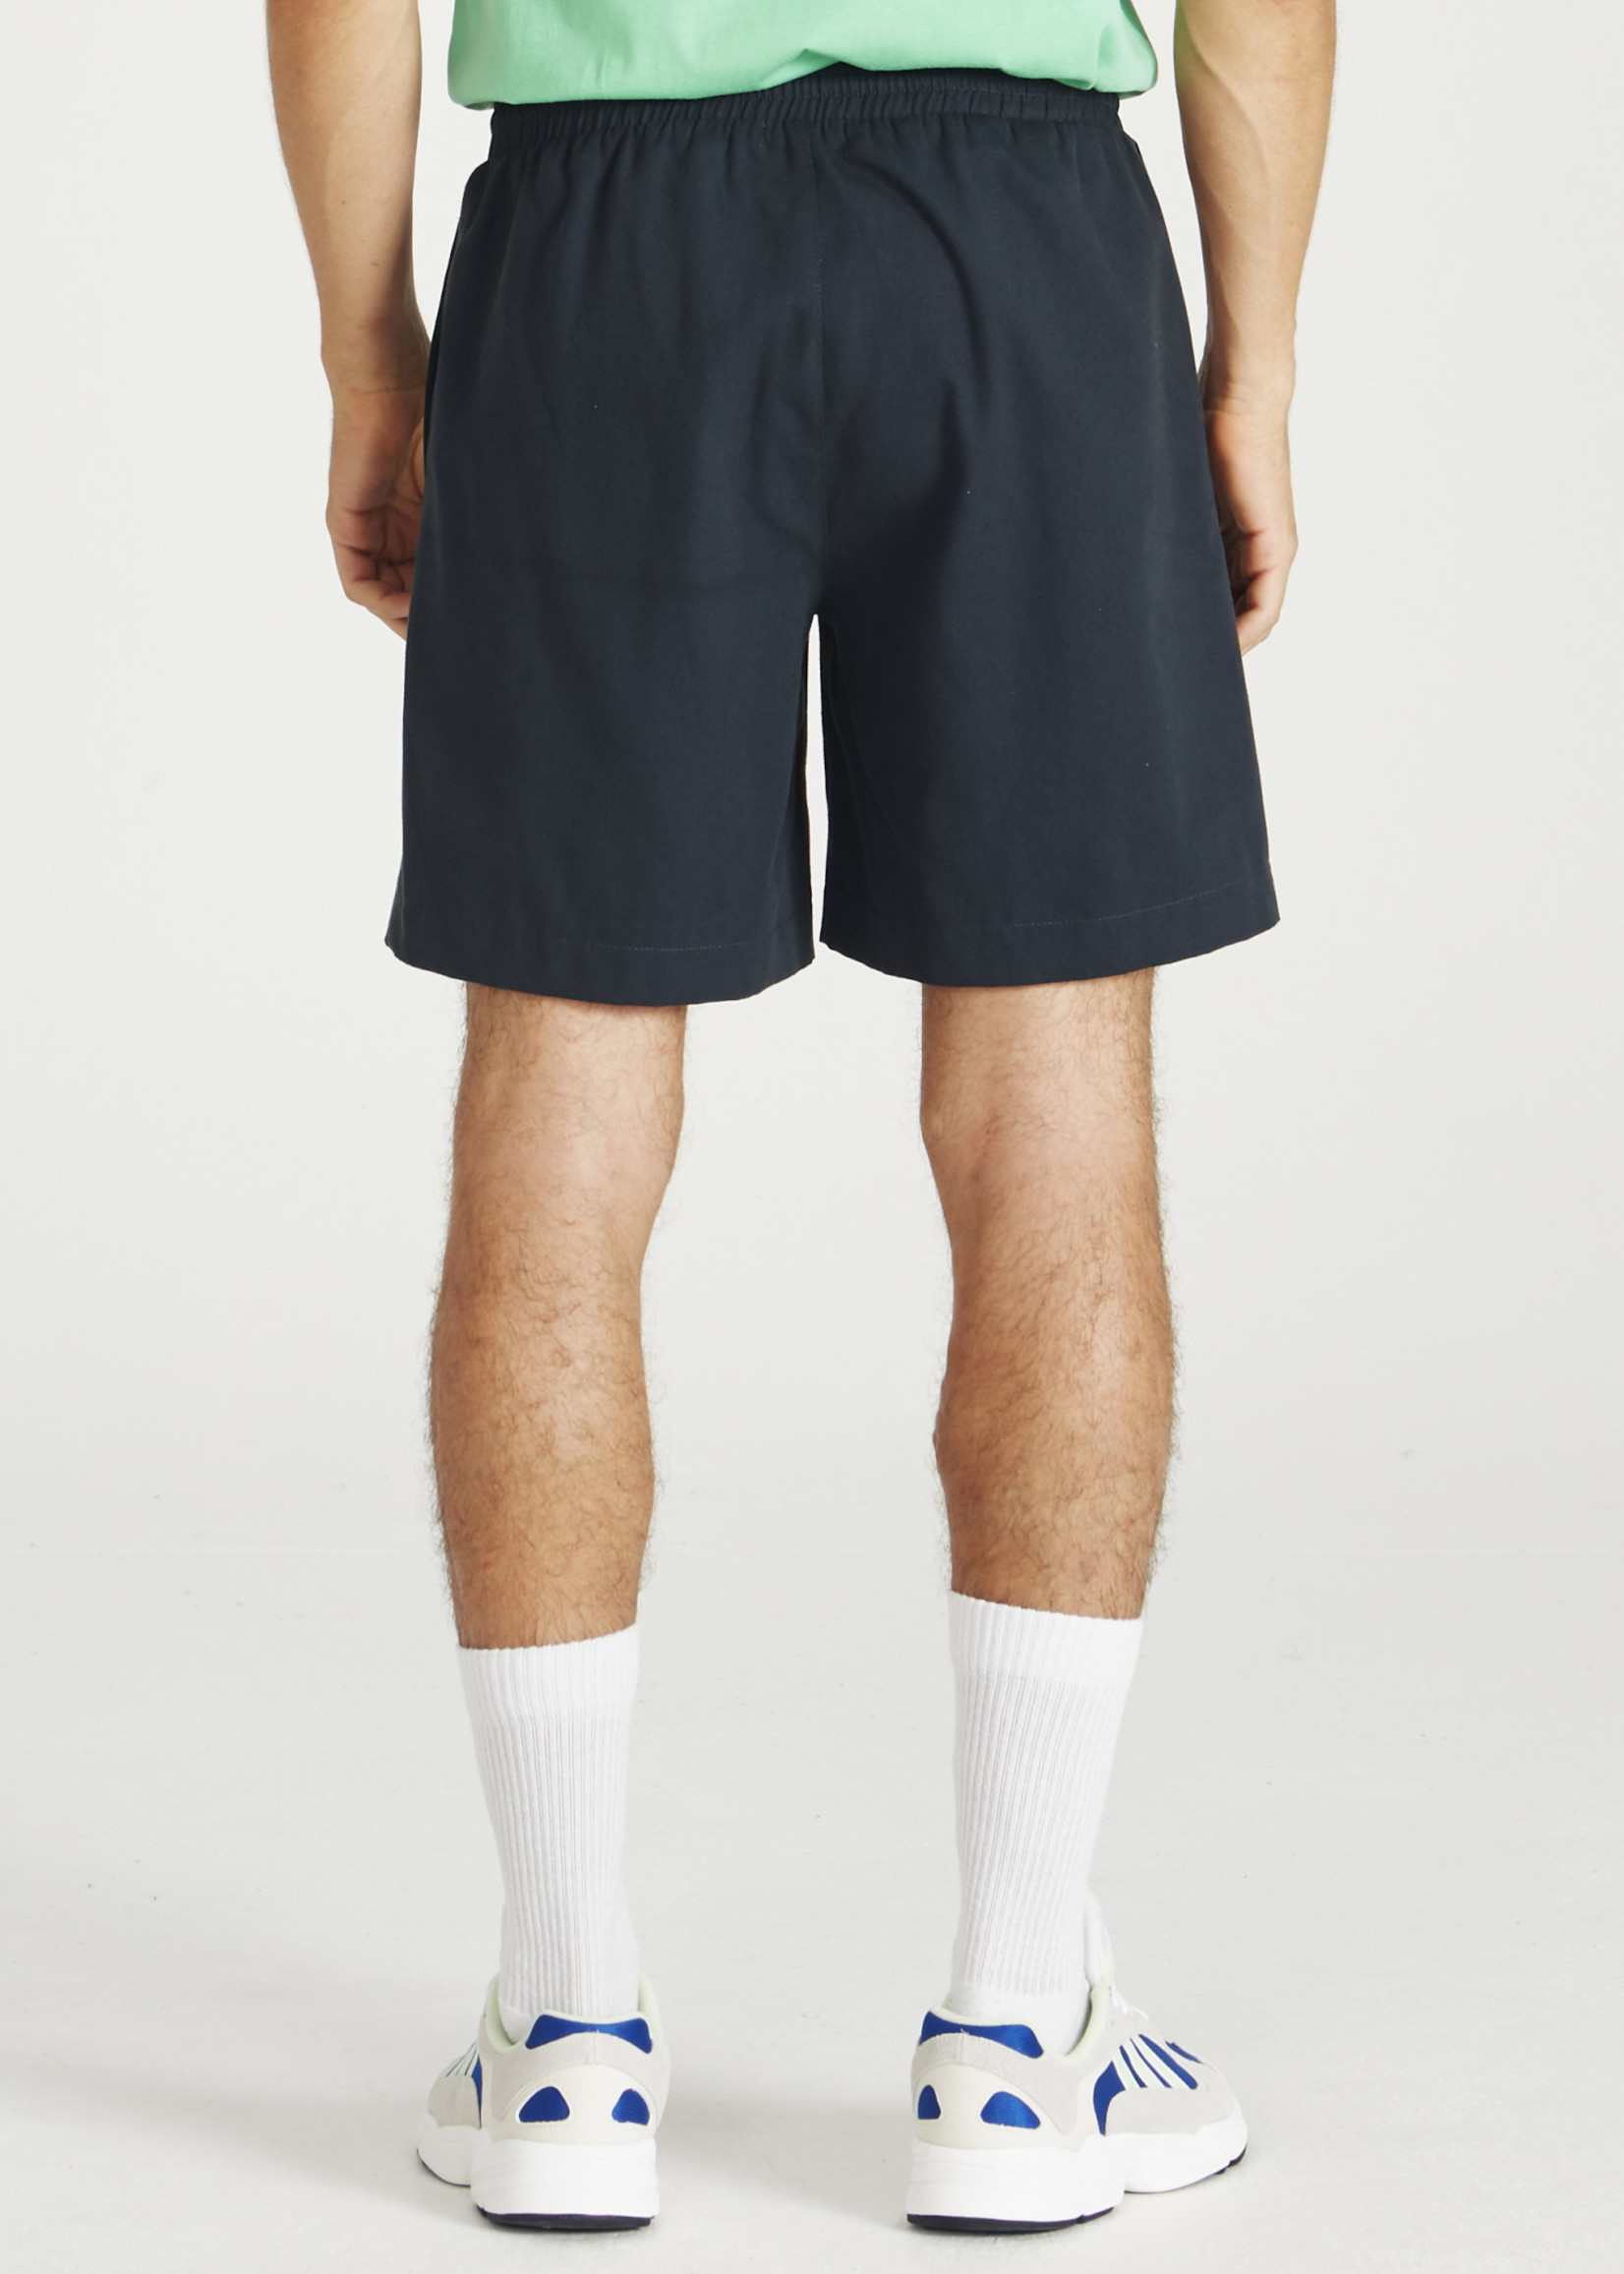 Givn Mike Shorts